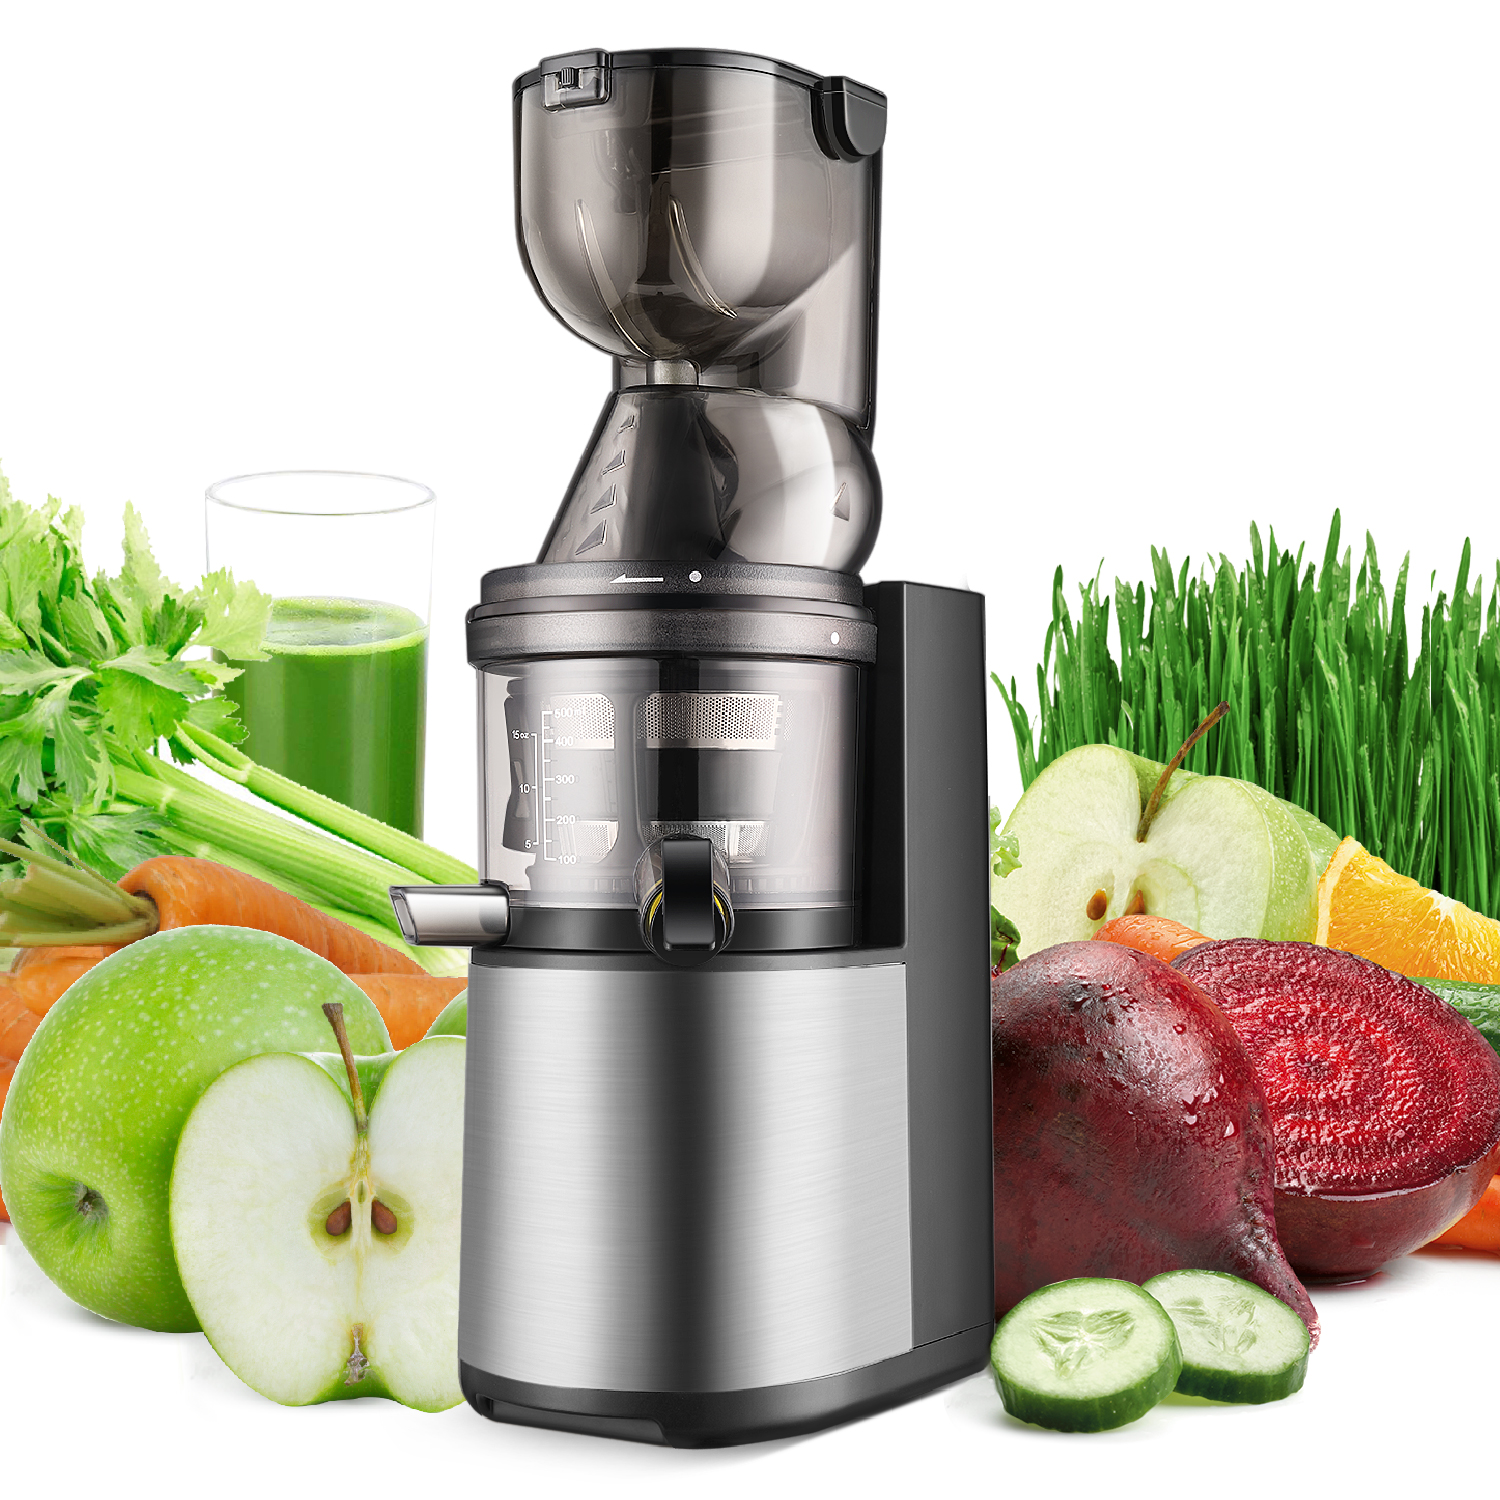 cold press juicer machine masticating slow juice extractor maker fruit vegetable ebay. Black Bedroom Furniture Sets. Home Design Ideas